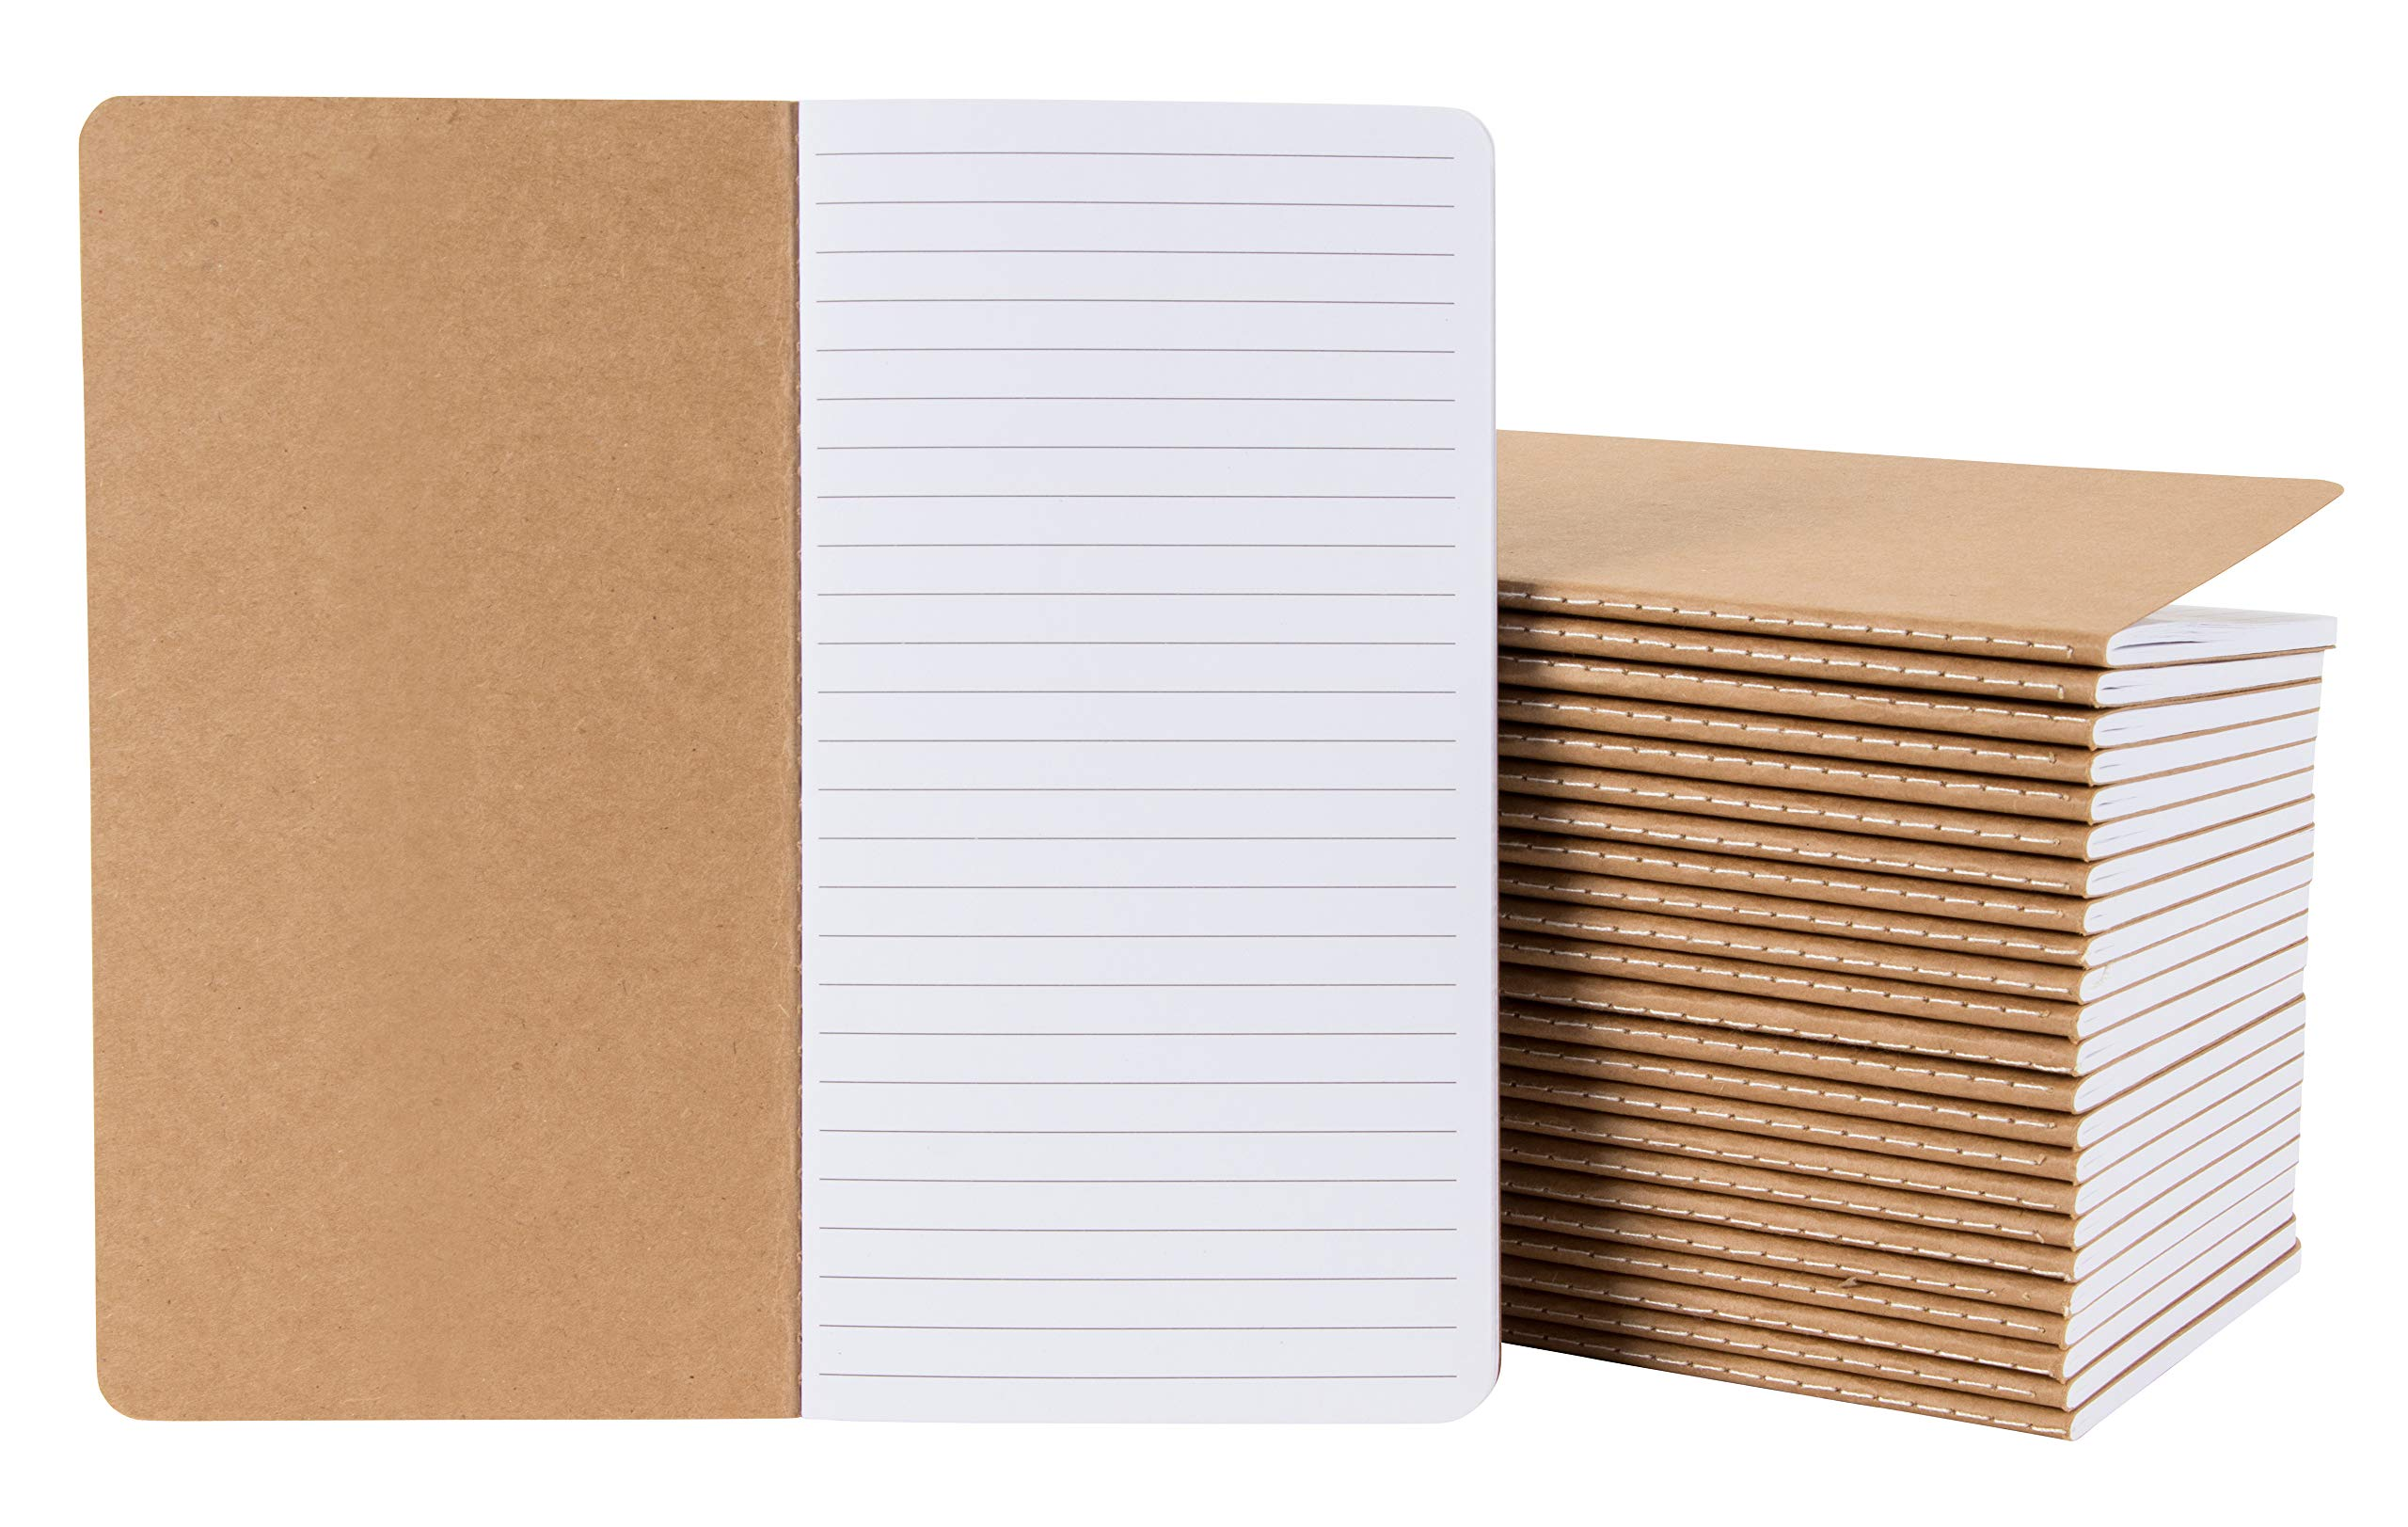 Kraft Notebook - 24-Pack Lined Notebook Journals, Pocket Journal for Travelers, Diary, Notes - H5 Size, Soft Cover Sewn Notebook, Brown, 4.3 x 8.2 Inches